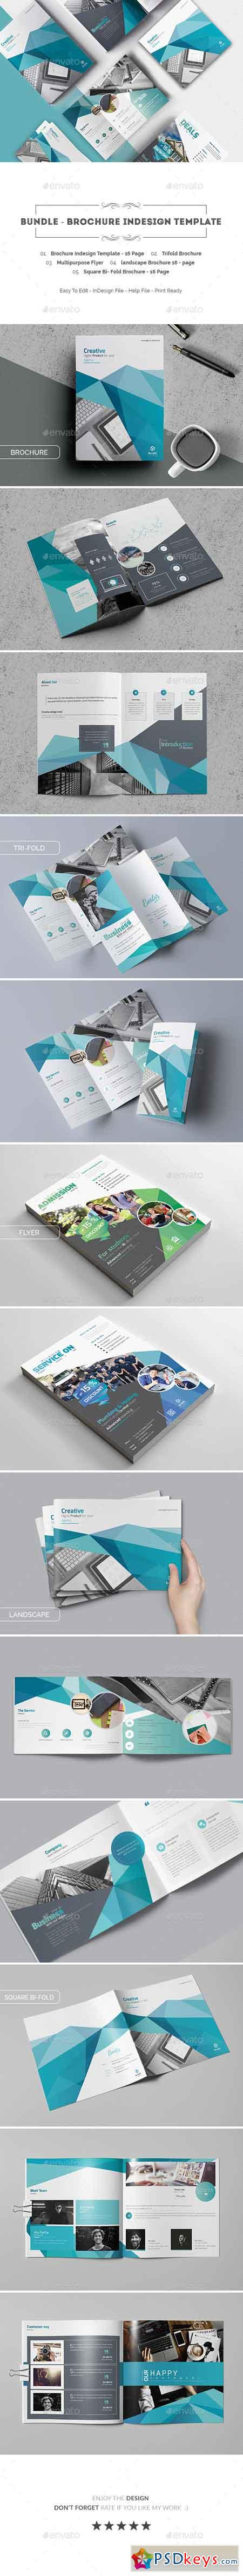 Bundle - Brochure Indesign Template 20515464 » Free Download ...